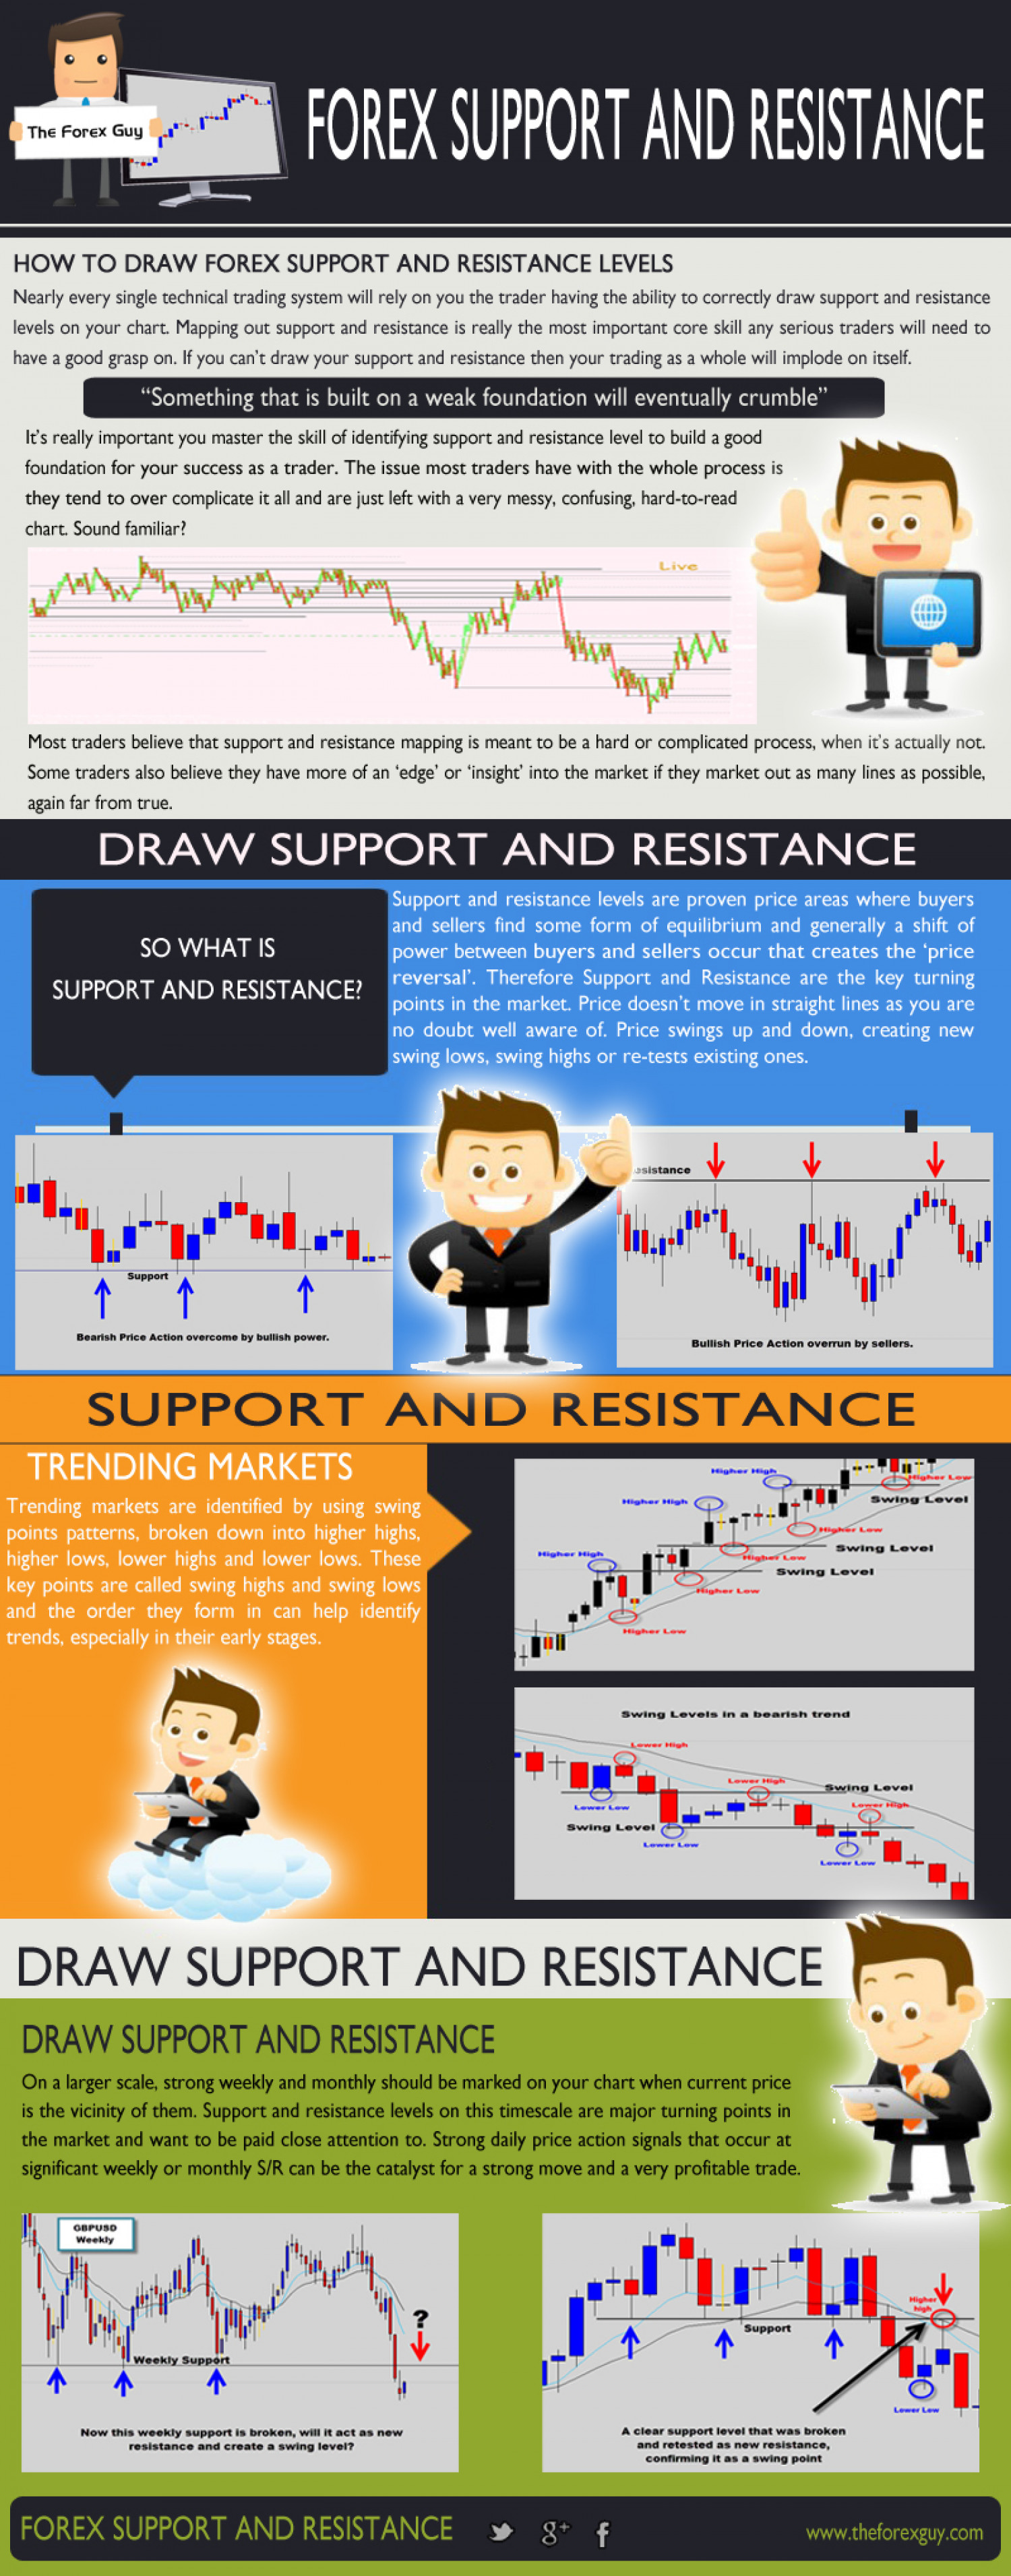 Forex Support And Resistance | Visual.ly